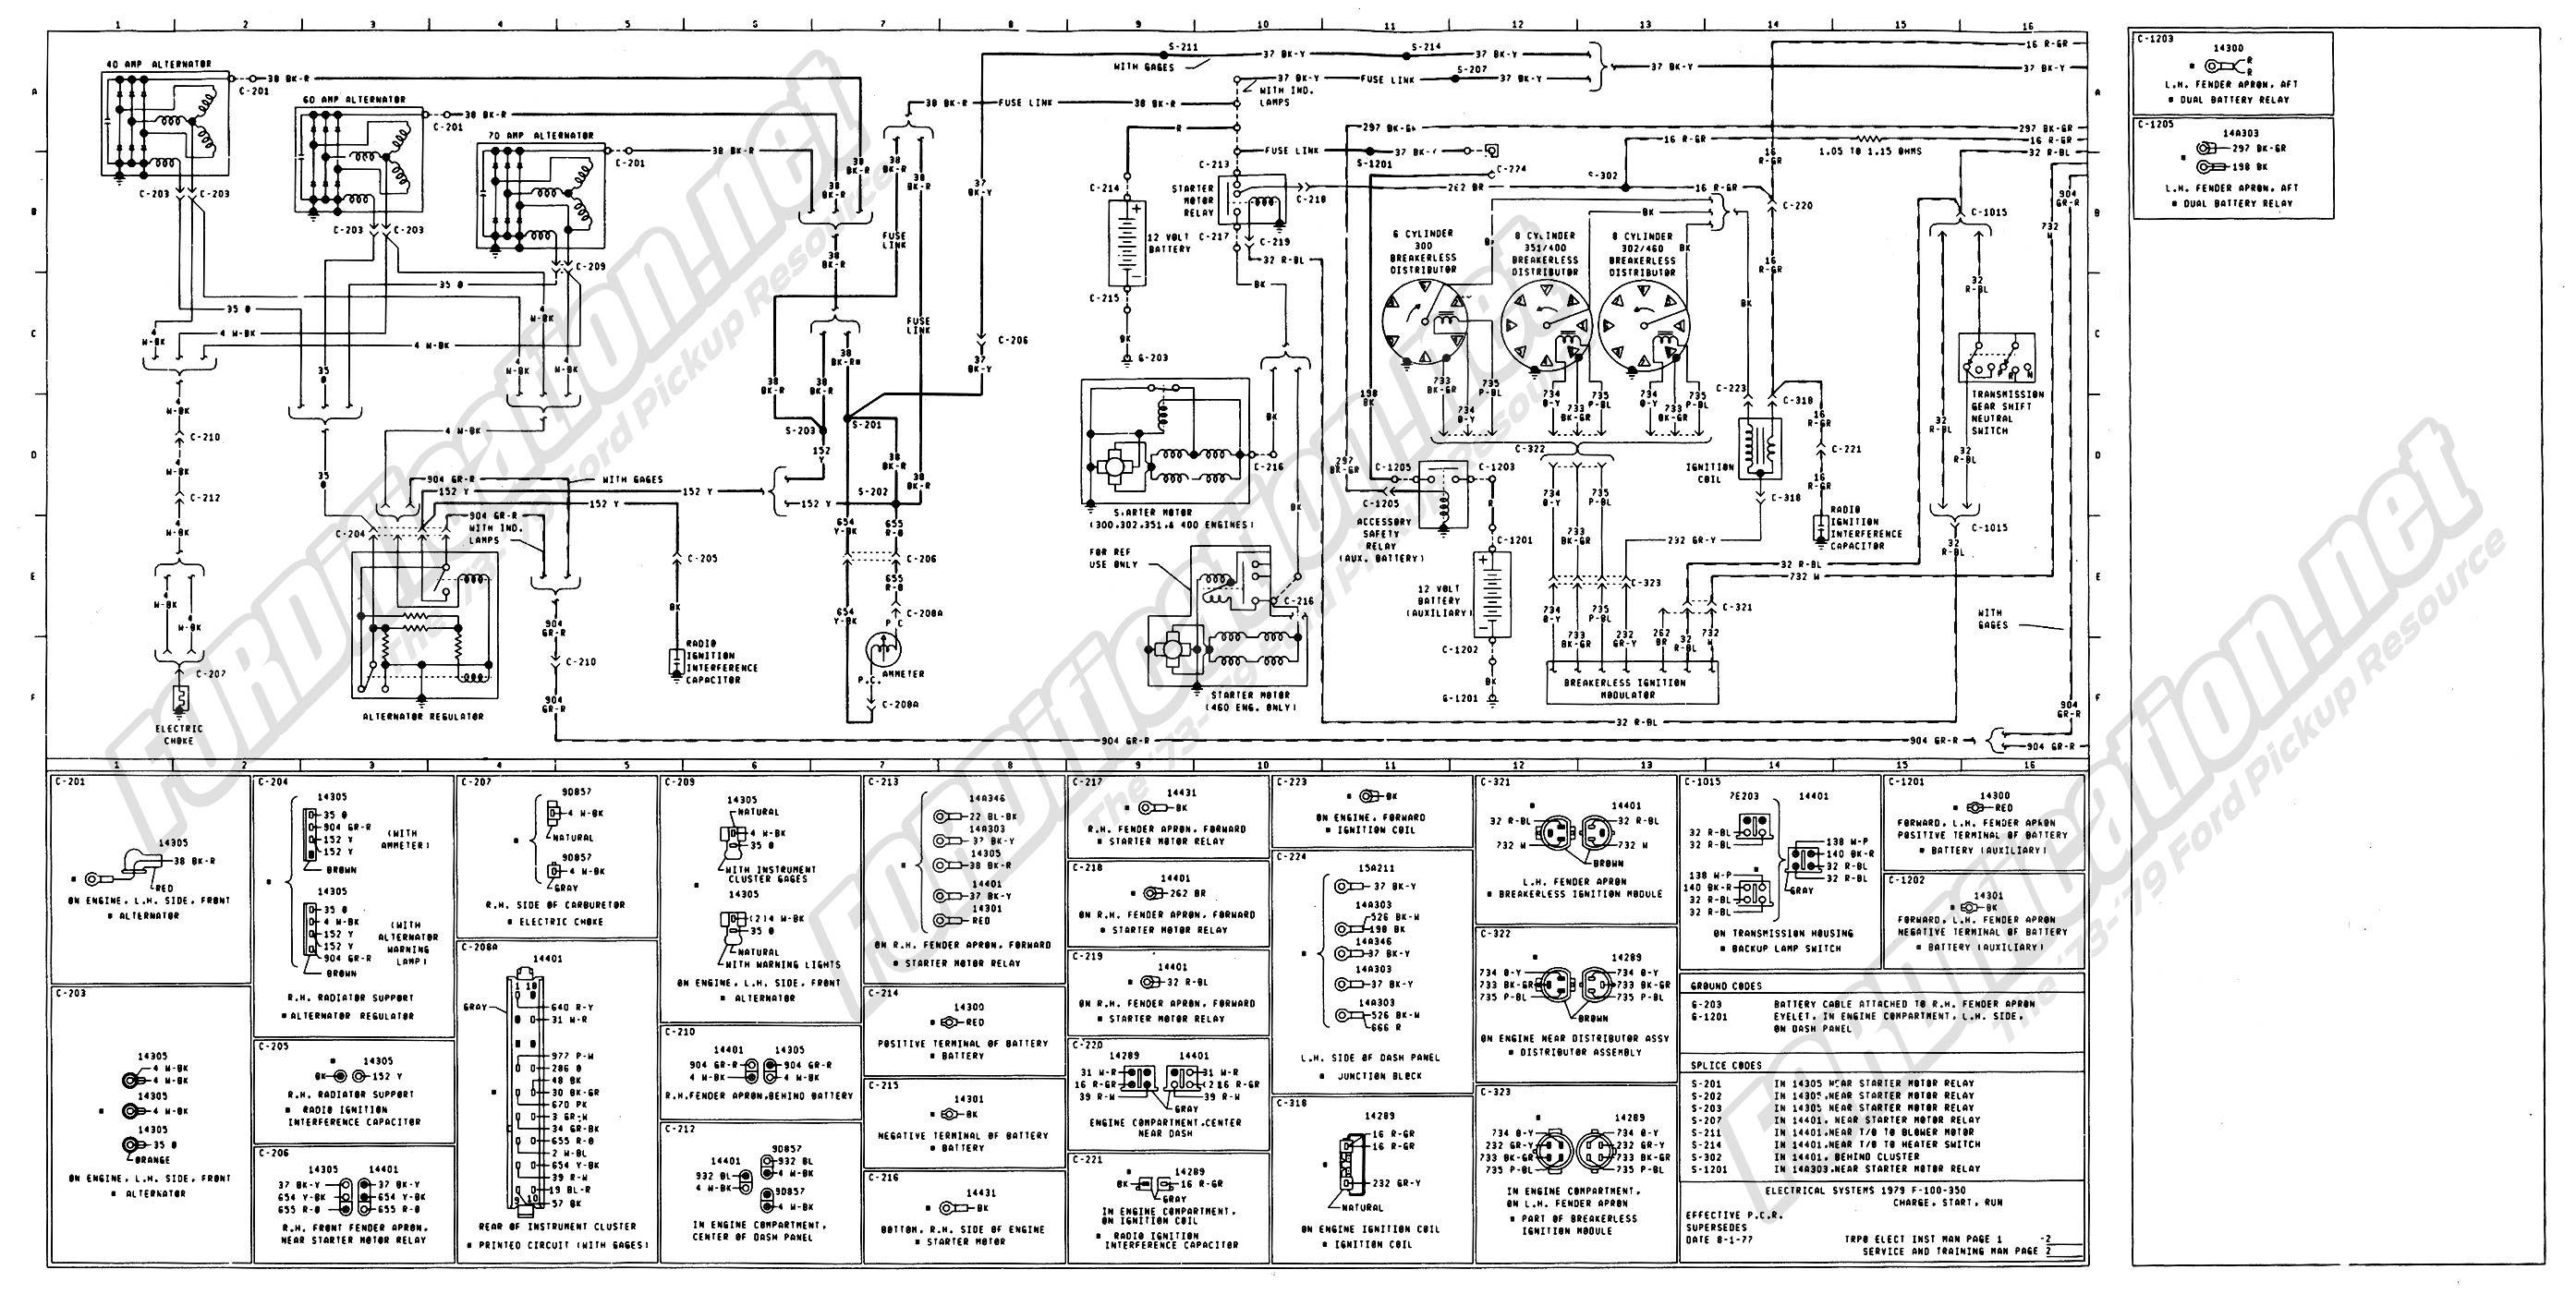 1978 Ford F800 Wiring Diagram Wire Center 1973 1979 Truck Diagrams Schematics Fordification Net Rh 1995 1964 Parts